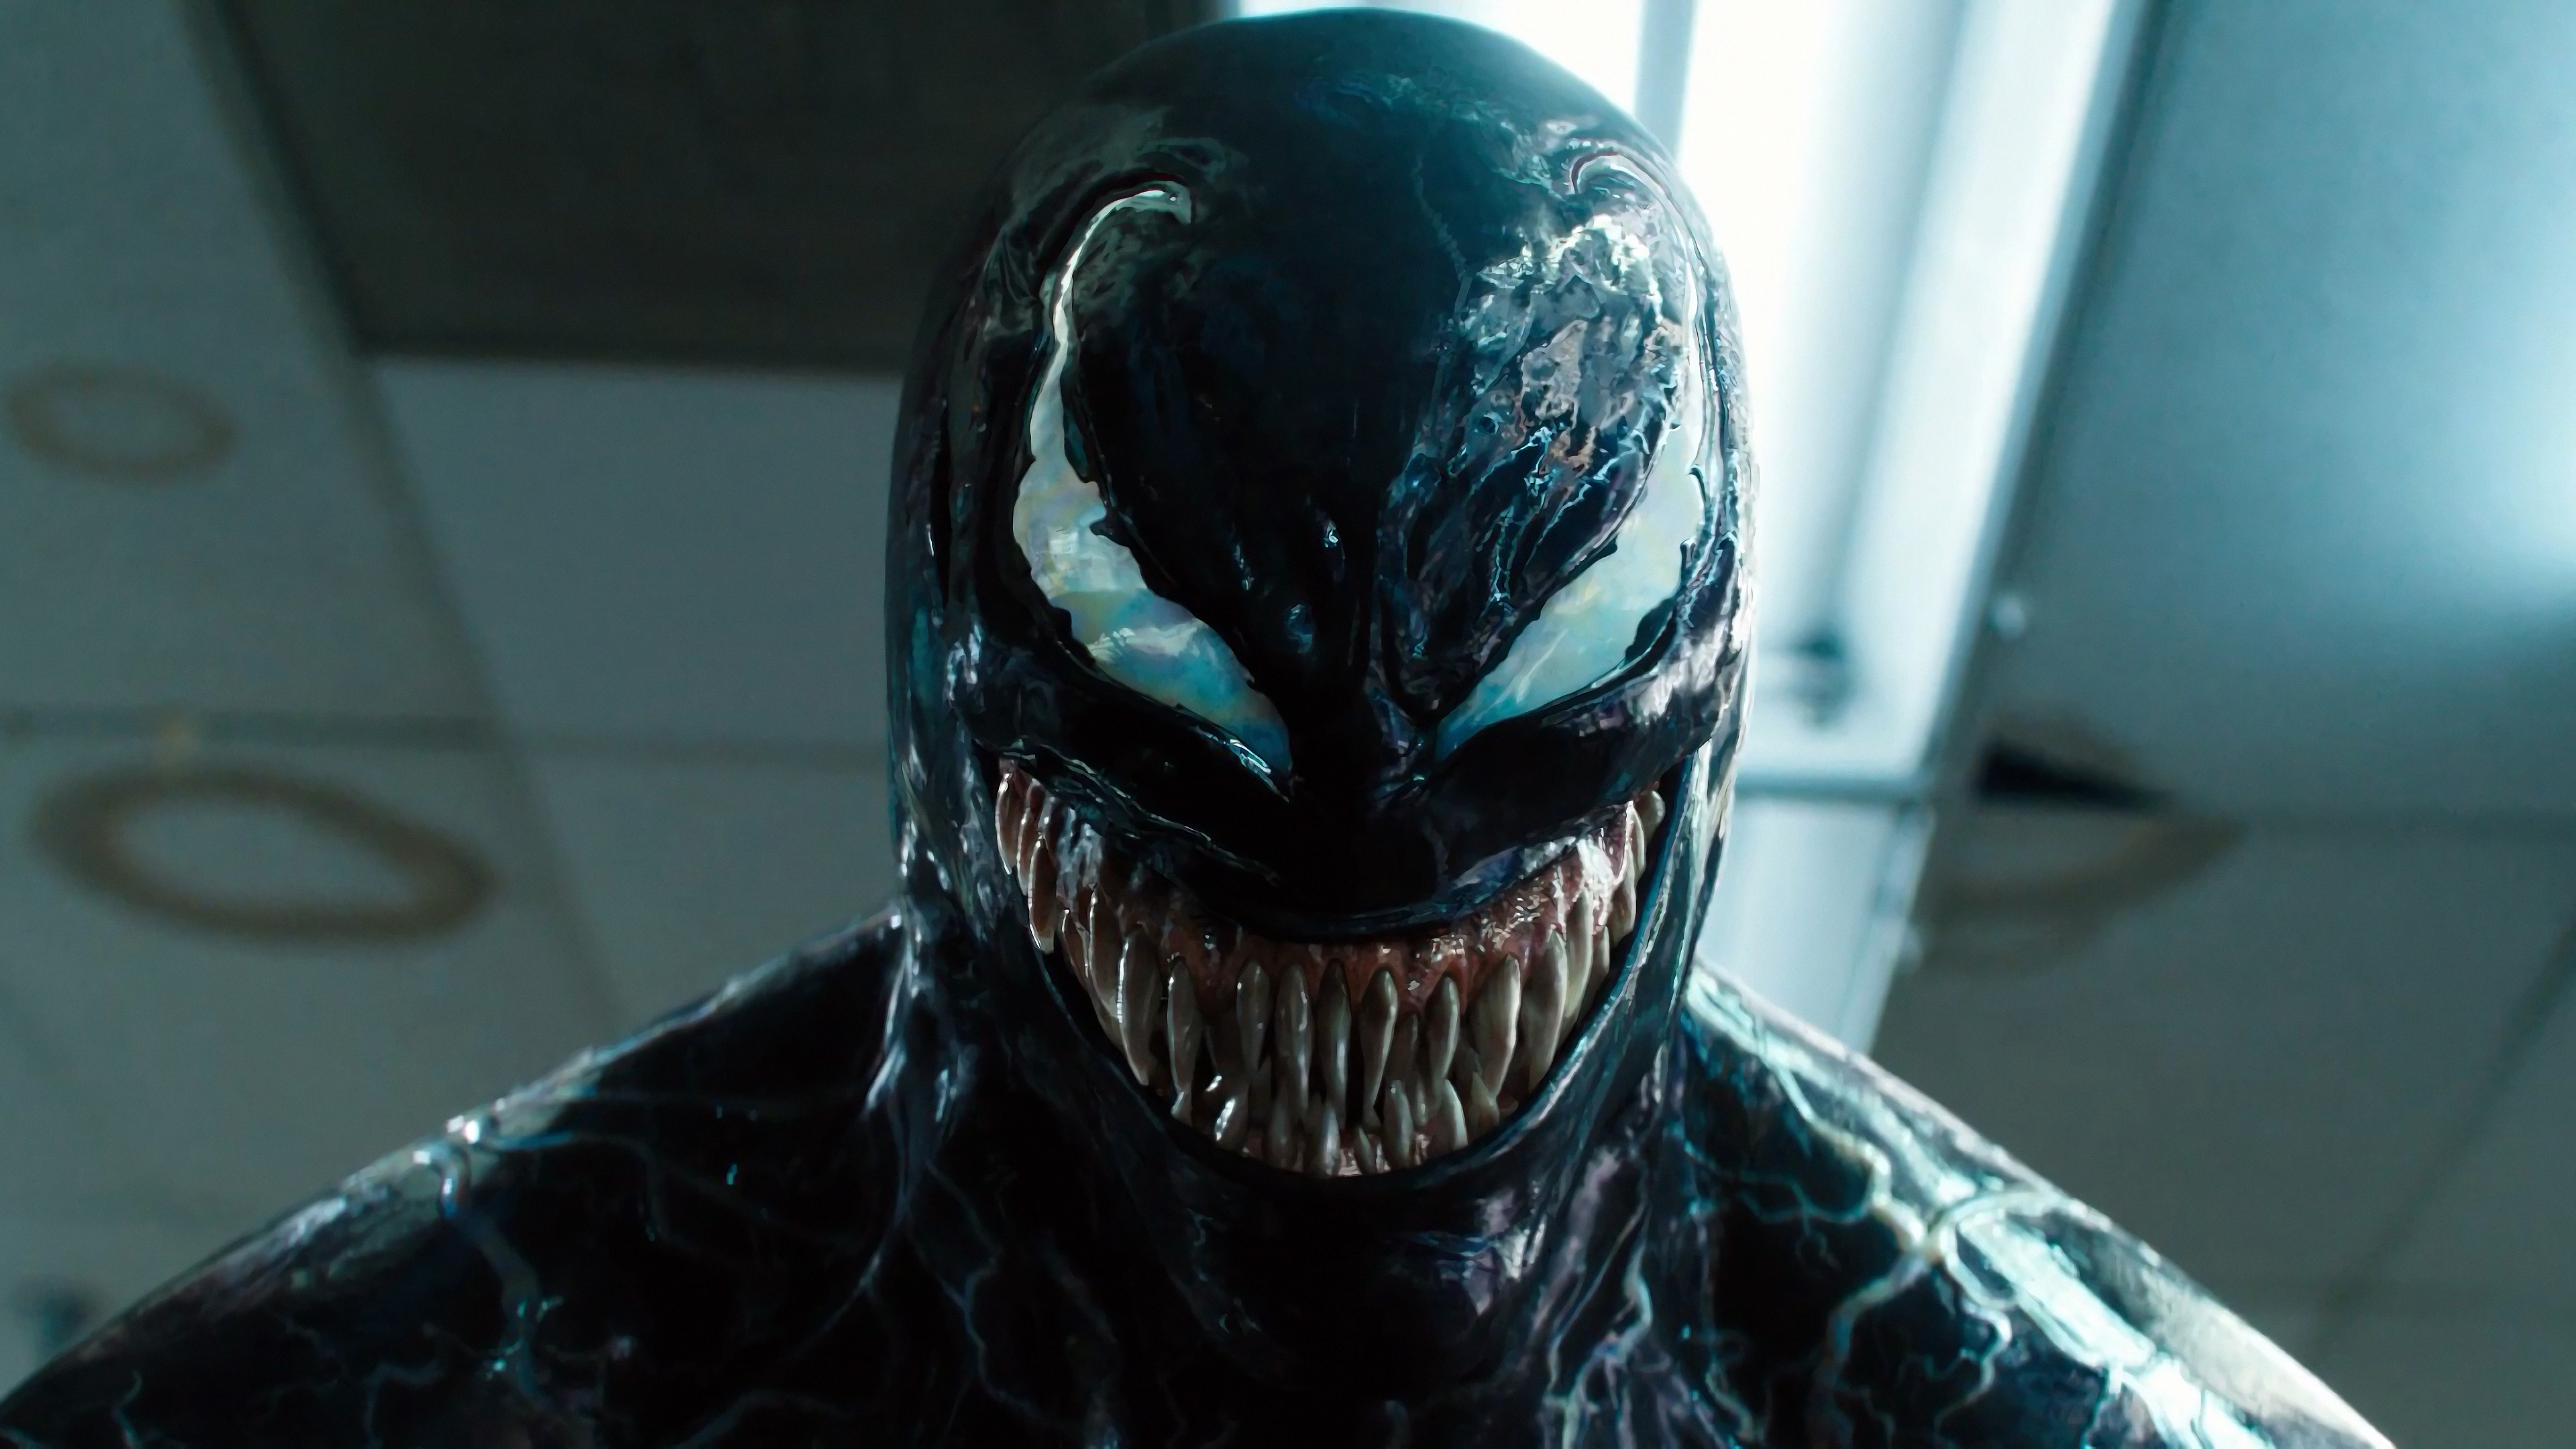 Venom 2018 Movie 4k, HD Movies, 4k Wallpapers, Images ...